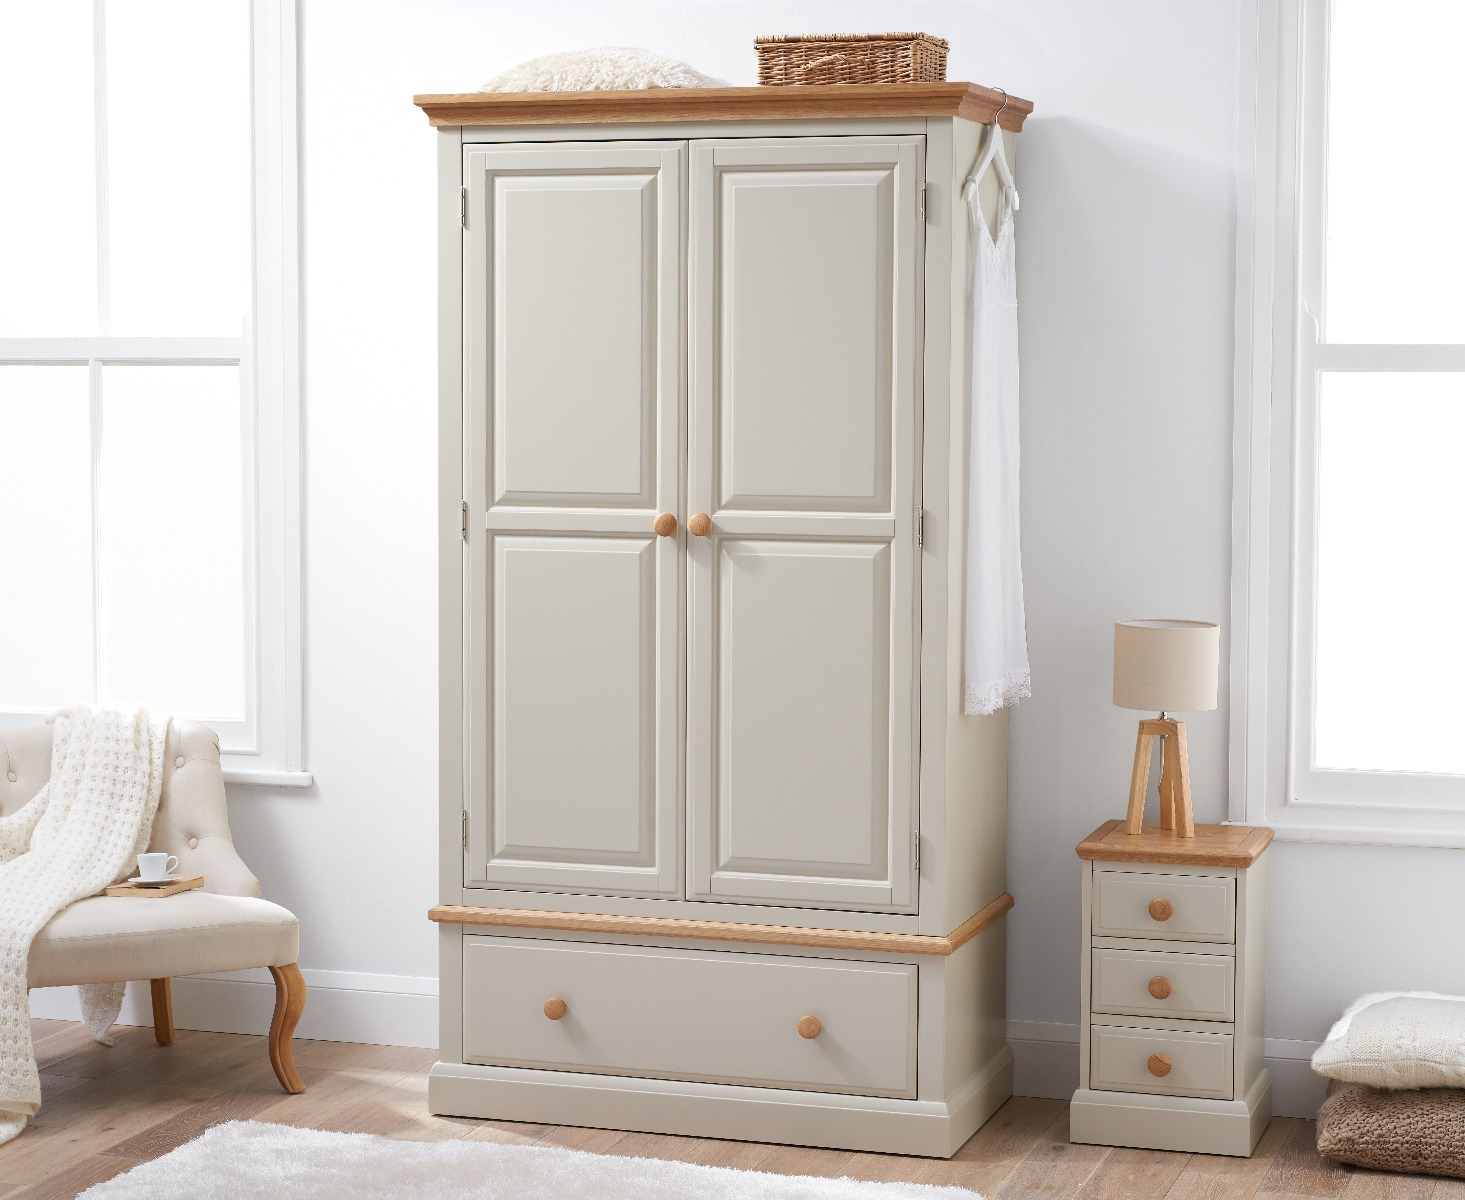 Image of Addison Oak and Stone Painted Large Two Door Wardrobe